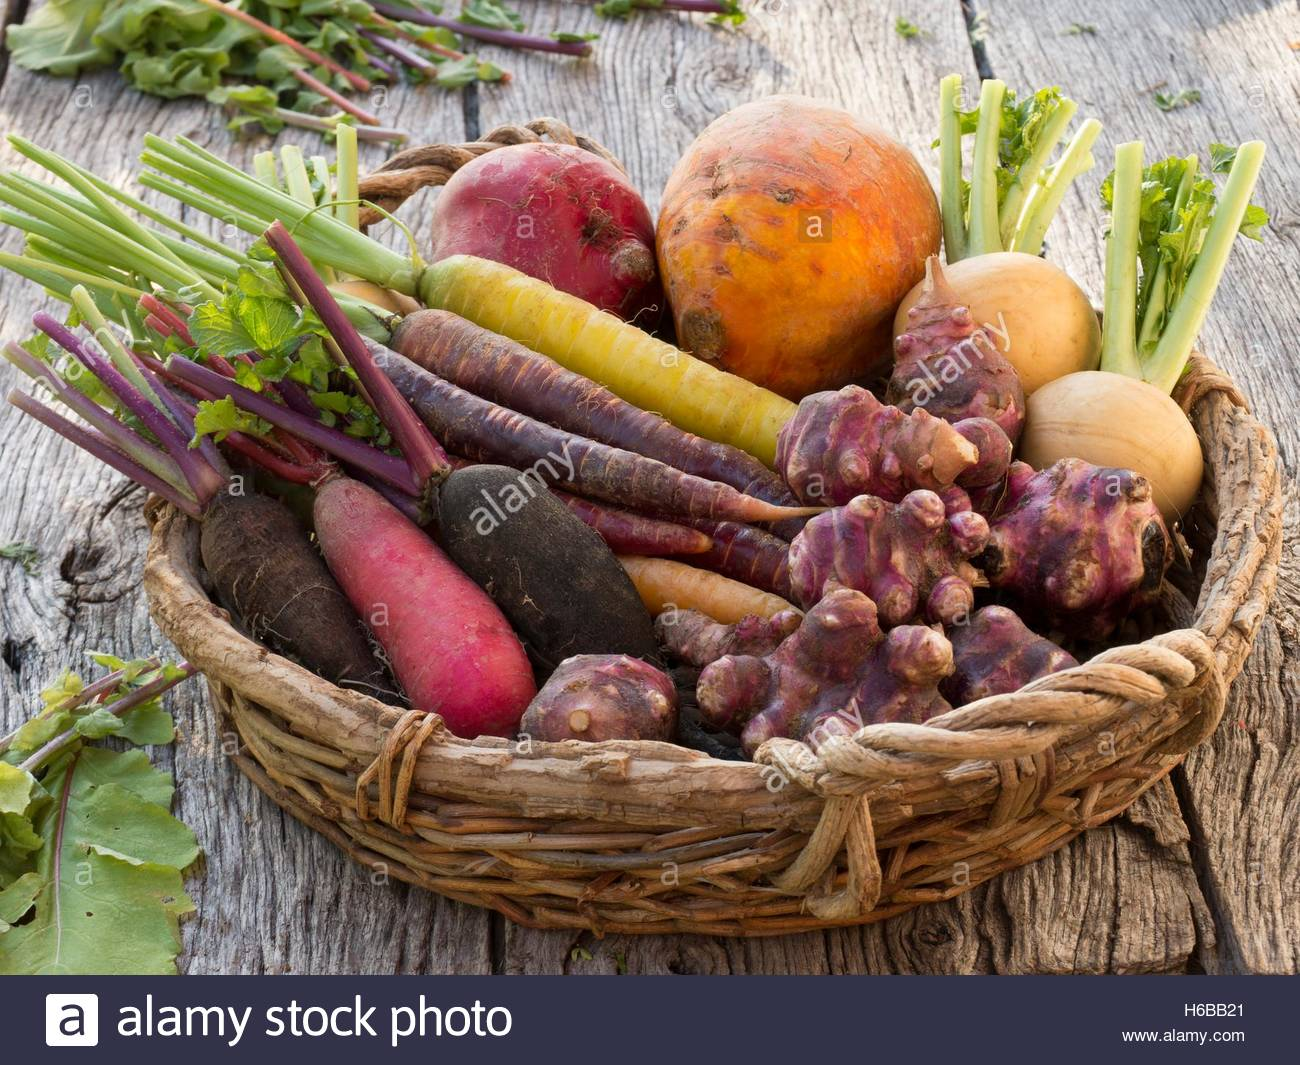 Winter root and tuber vegetables, Winter Radishes, Carrots, Beets, Jerusalem artichokes and Turnips in a wicker - Stock Image